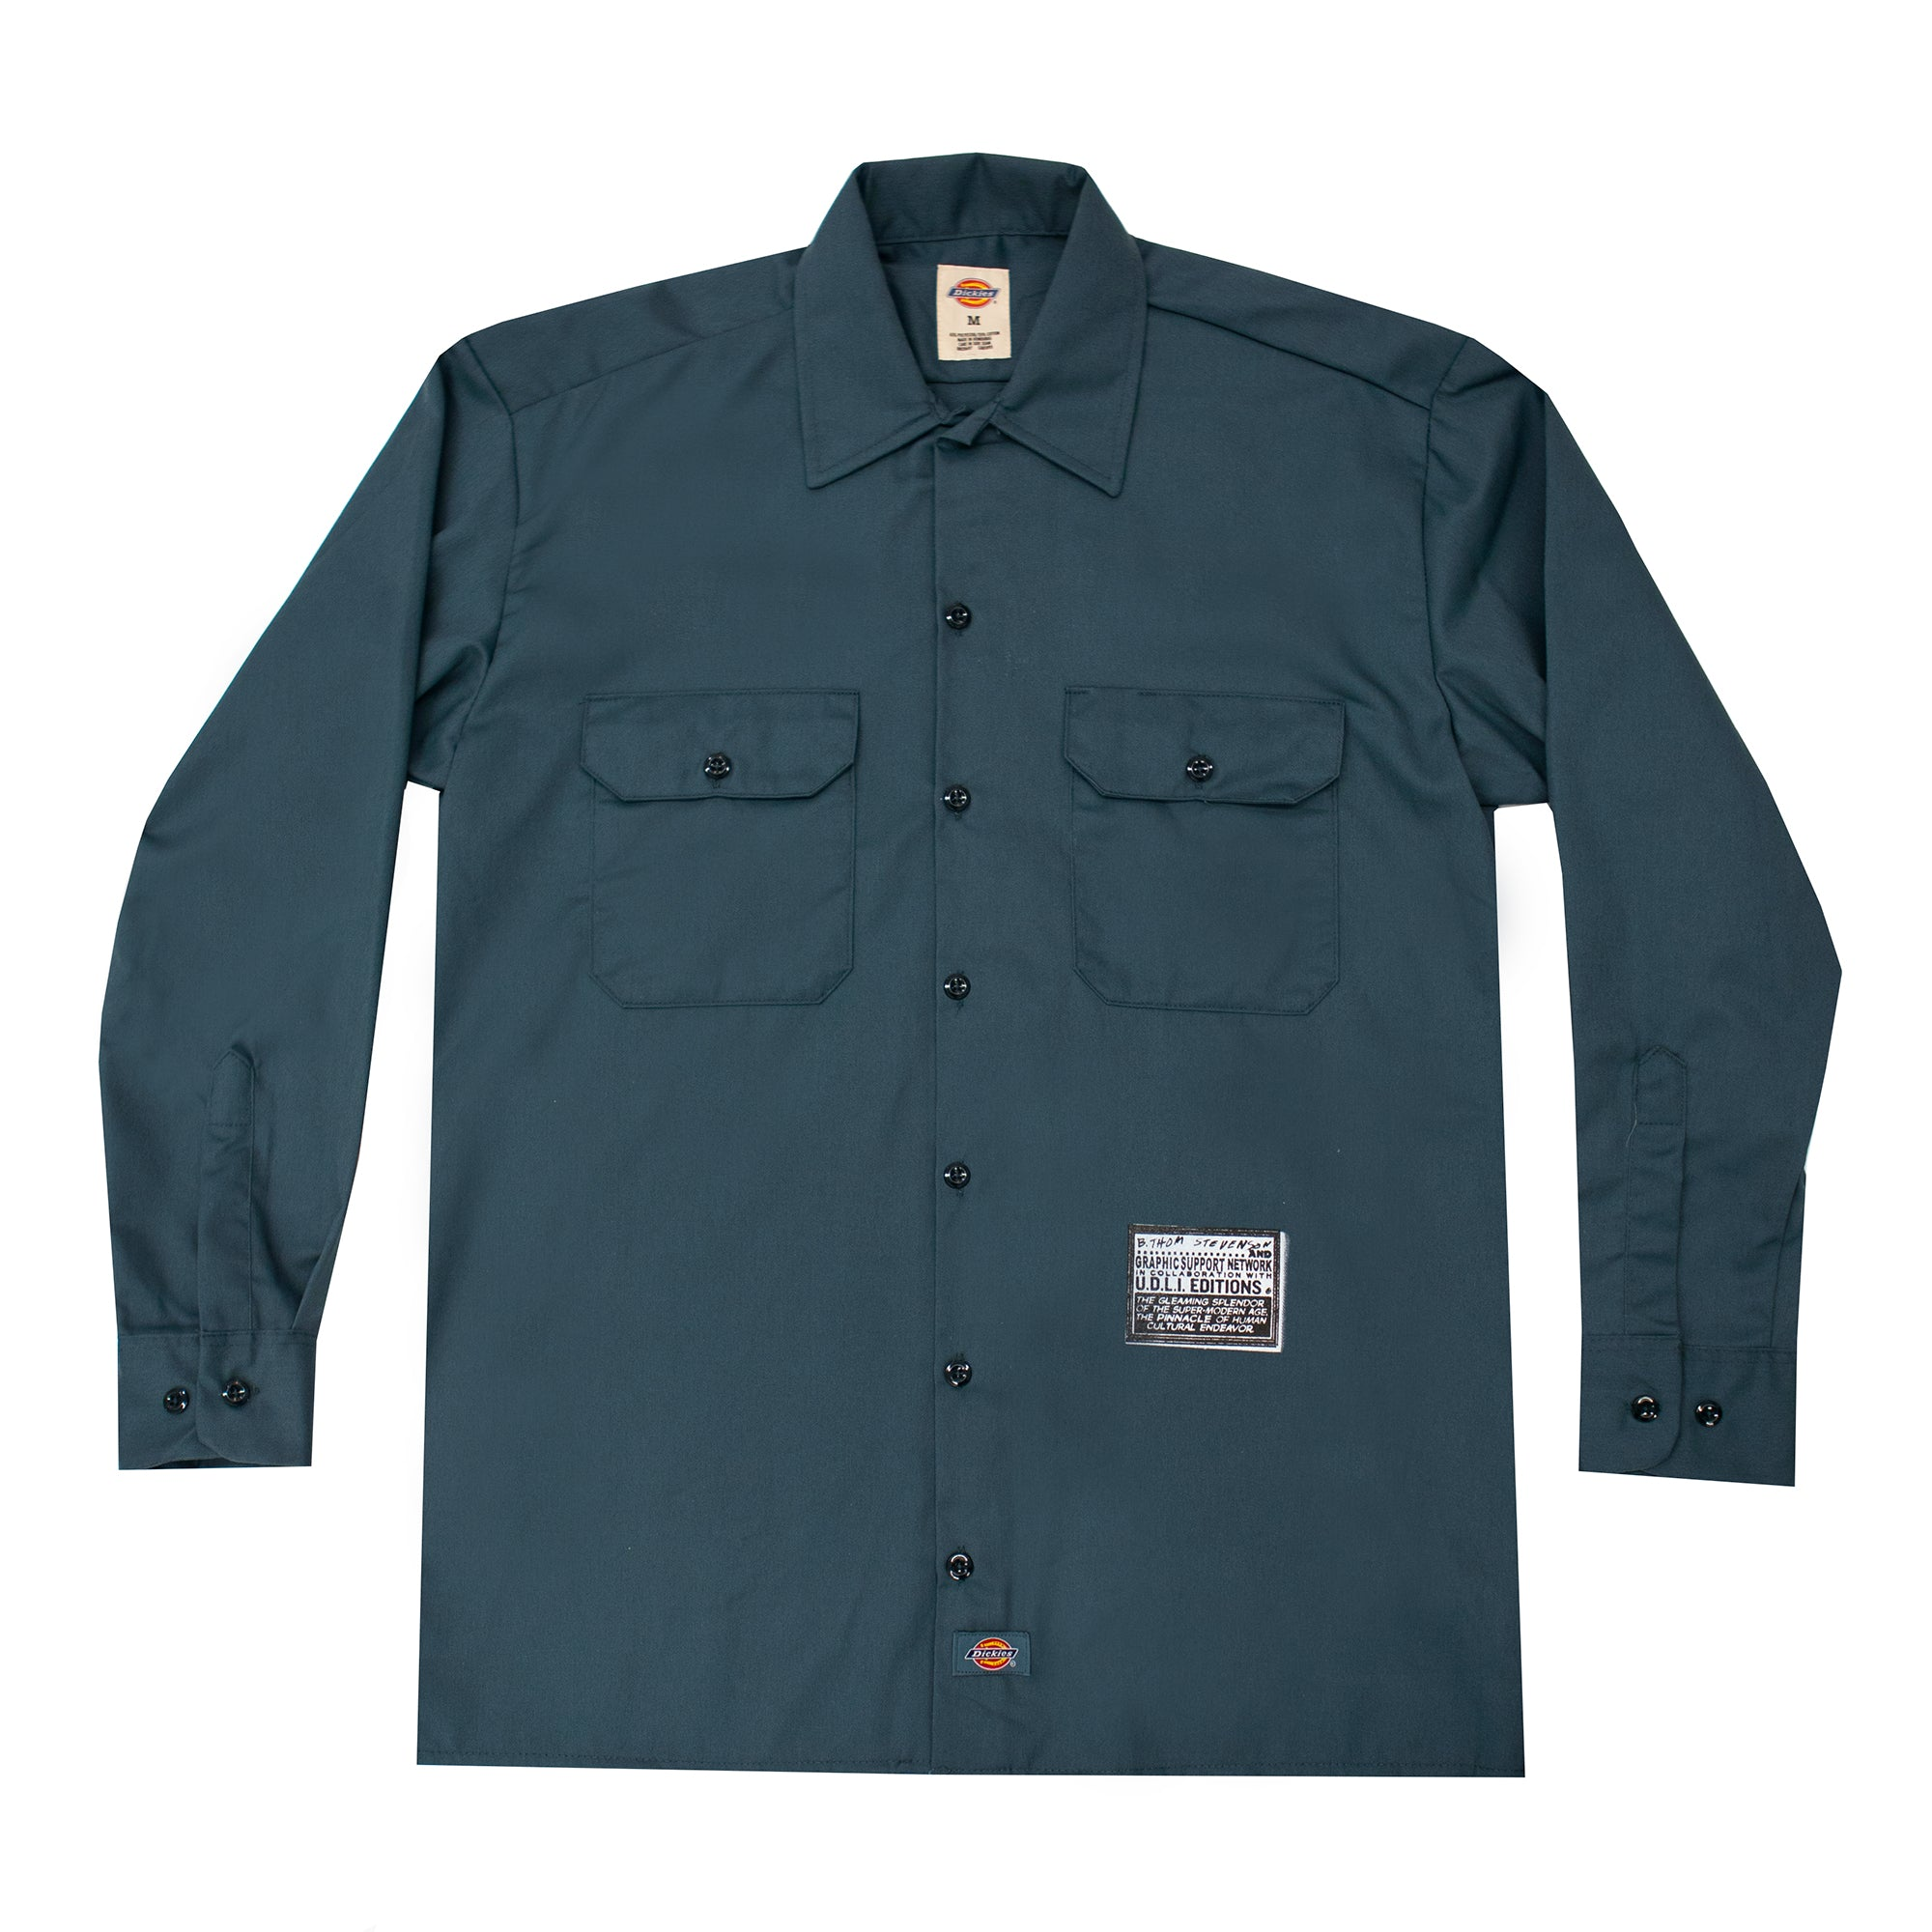 B. Thom Stevenson Customized Dickies Button Down Shirt